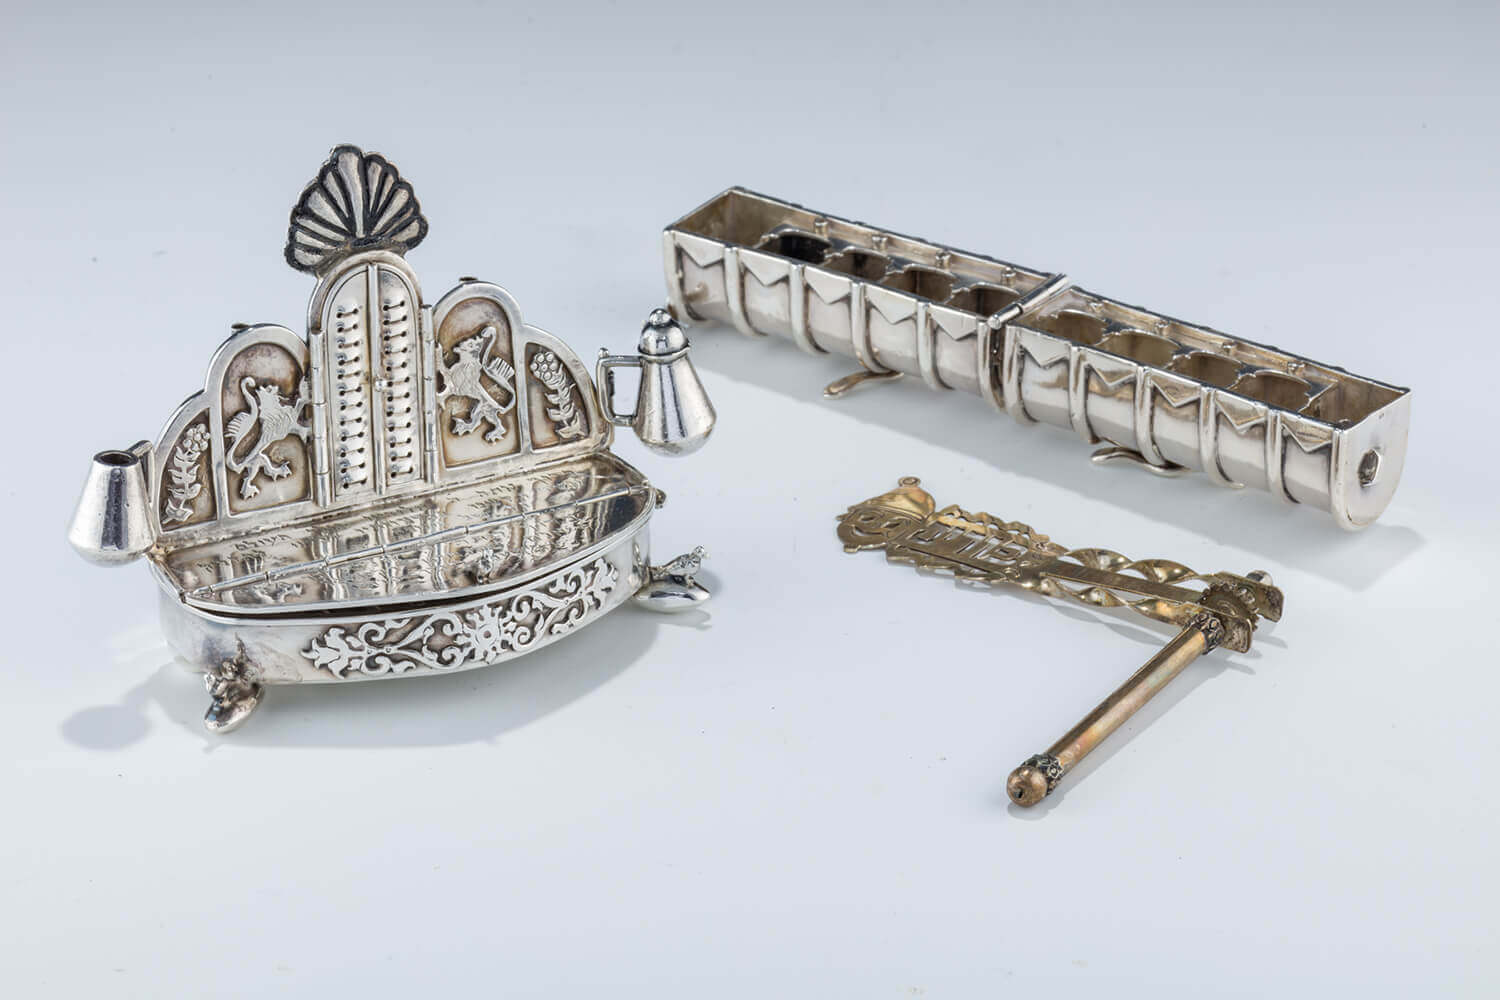 164. TWO SILVER TRAVELLING HANUKKAH LAMPS